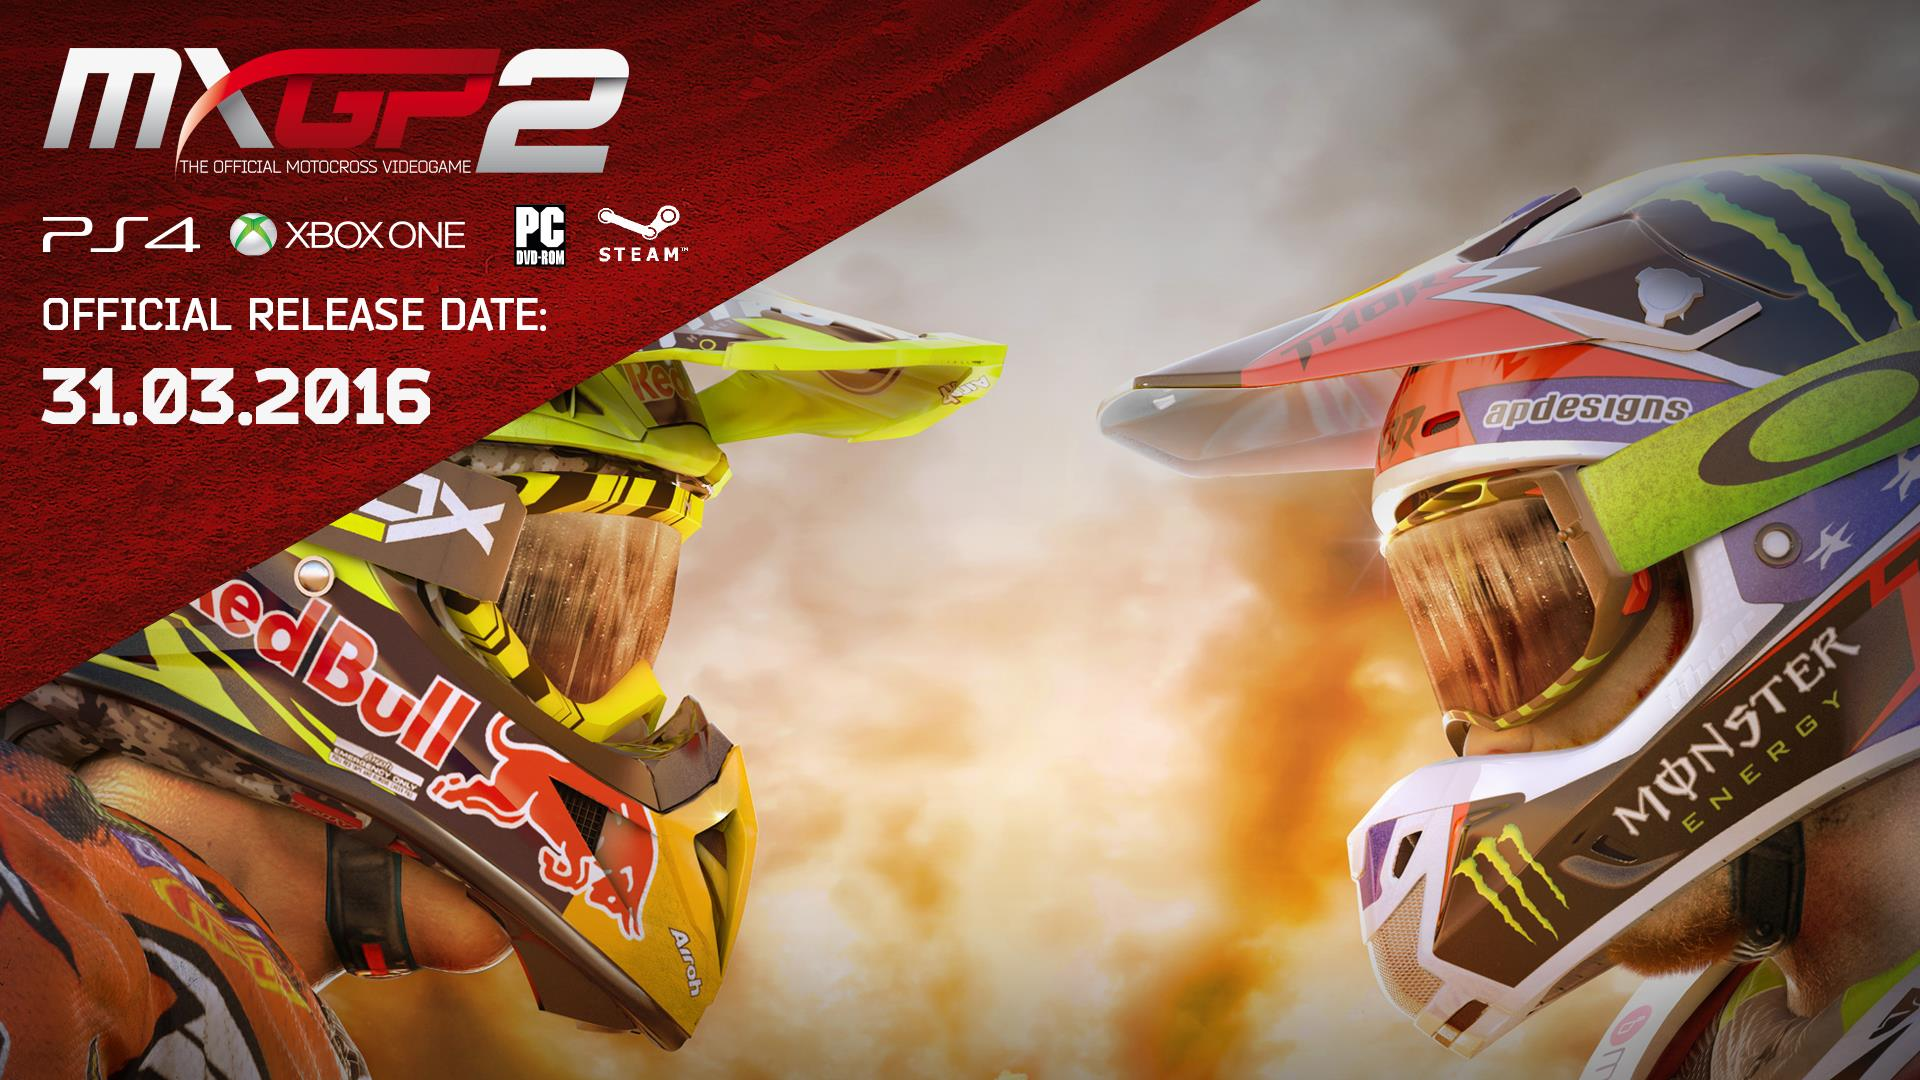 MXGP 2 main artwork